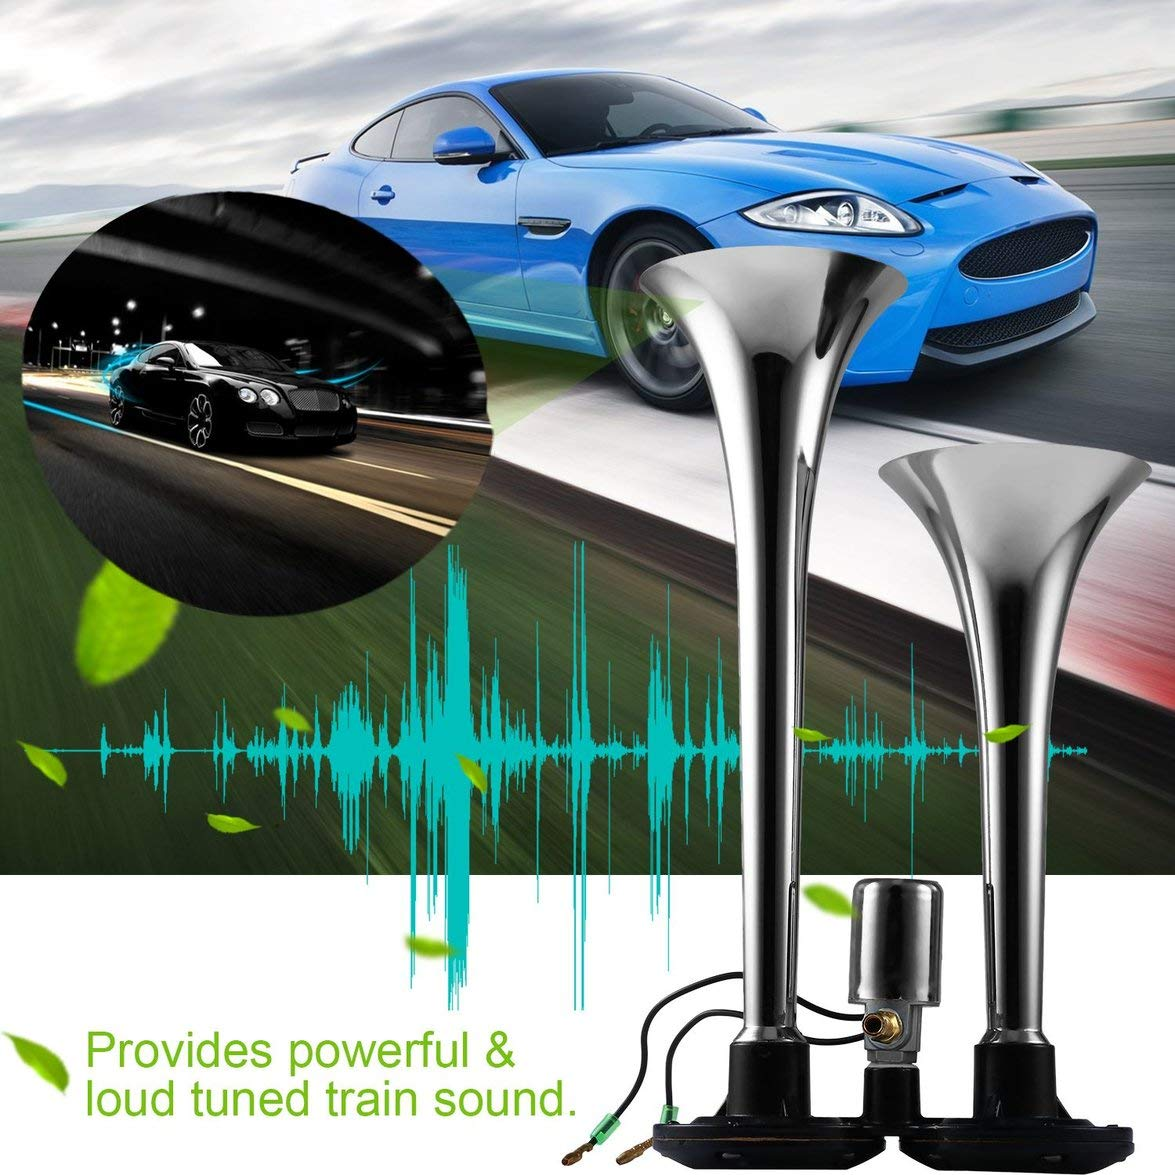 Amazon.com: MqbY 24V 128DB Electric Air Horn Super Loud Dual Trumpet Air Horn Powerful Metal Vehicle Horn for Car Truck Train Lorry Boat: Car Electronics